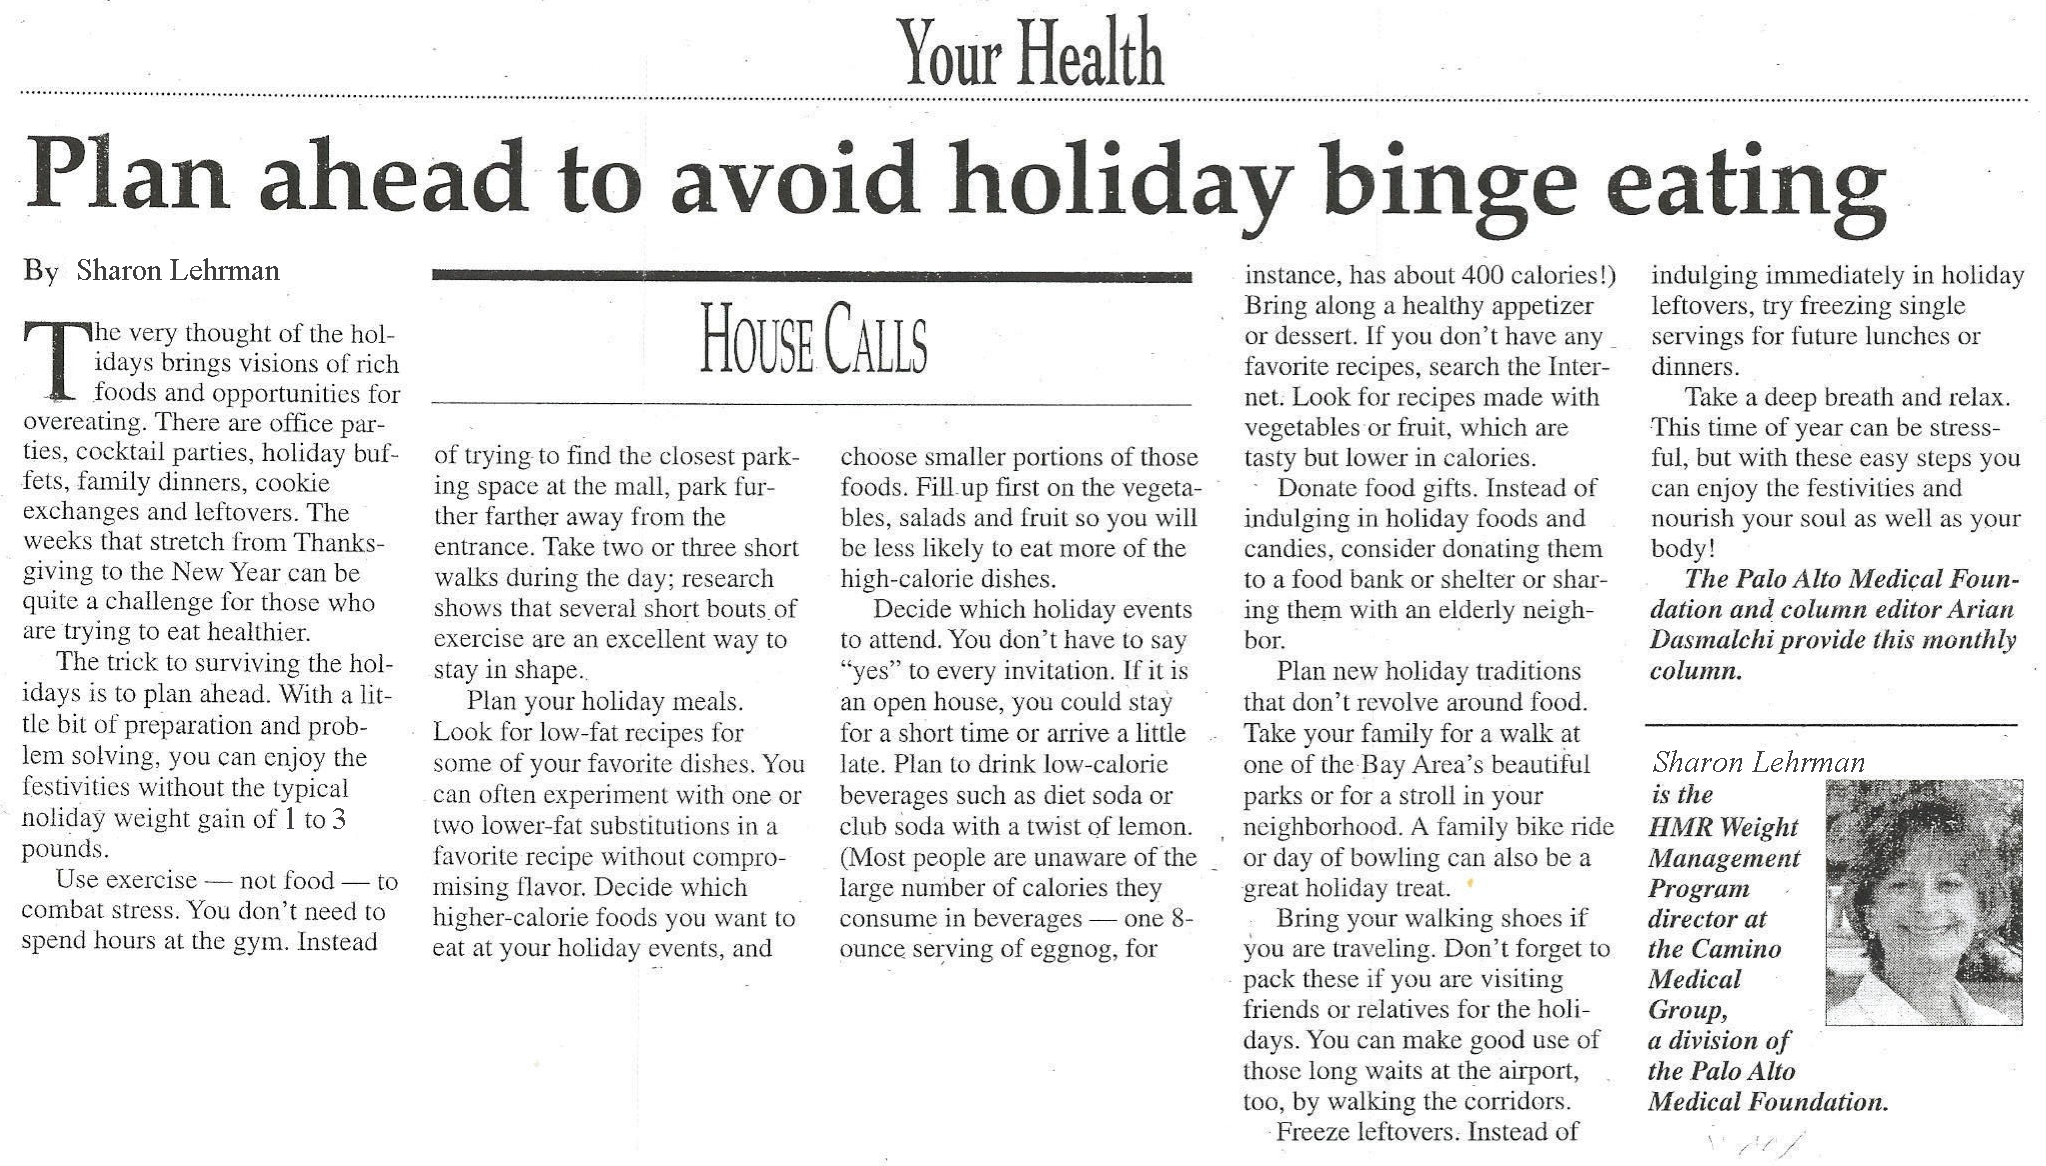 health newspaper article: